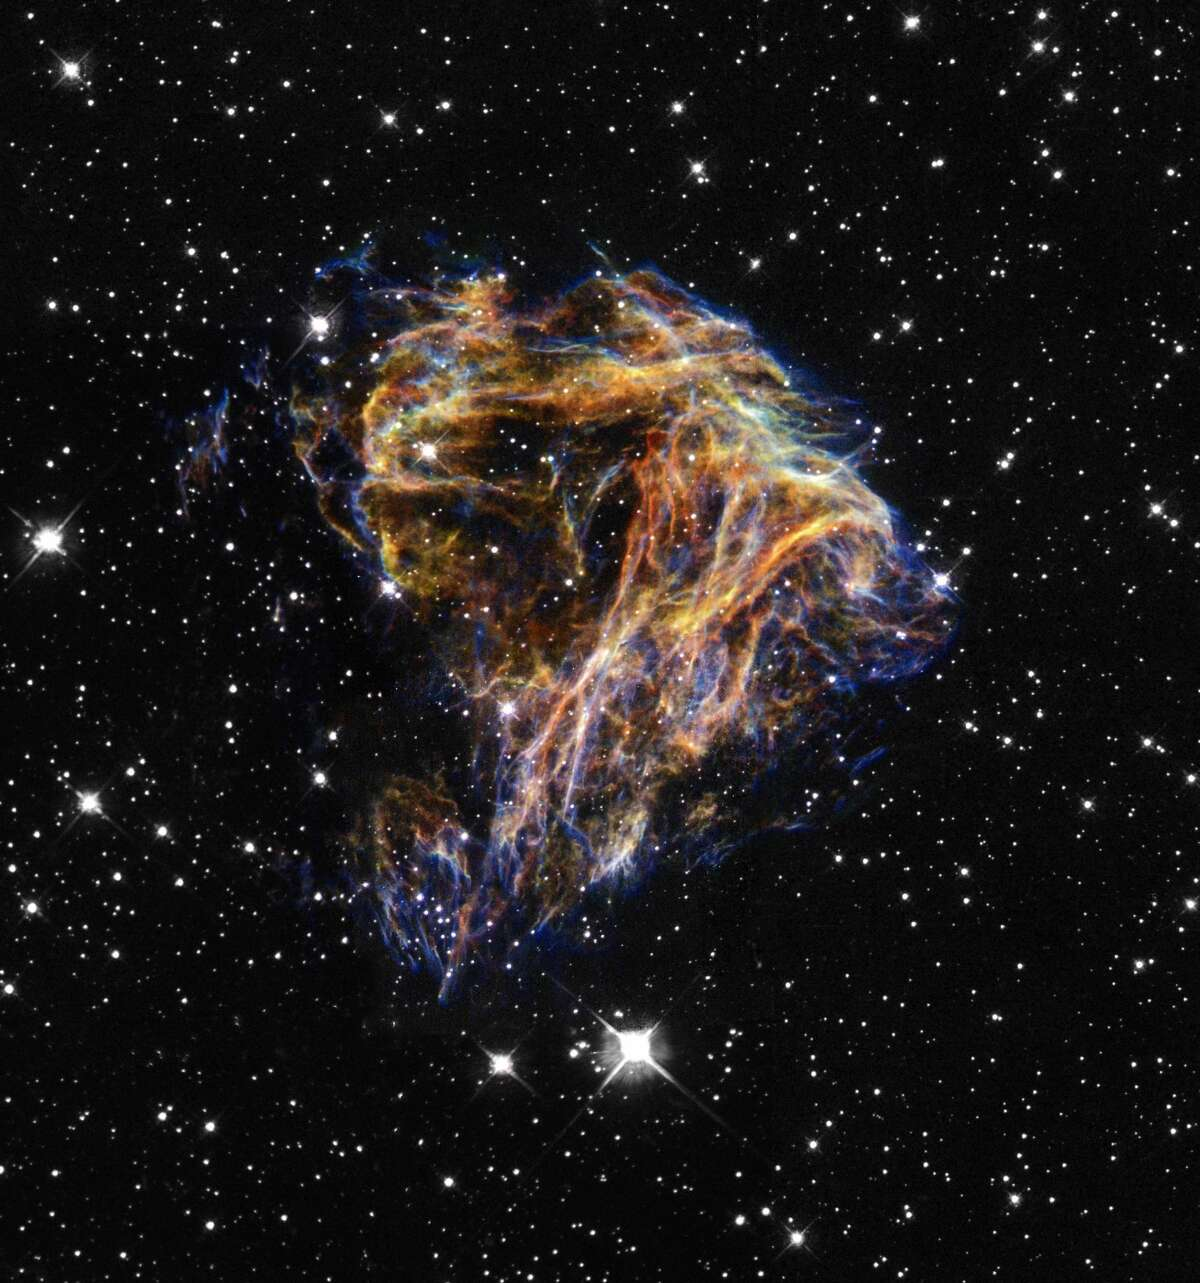 Here's what Hubble saw on Lizzo's April 27 birthday: Supernova Remnant N 49. (Happy birthday Lizzo!)